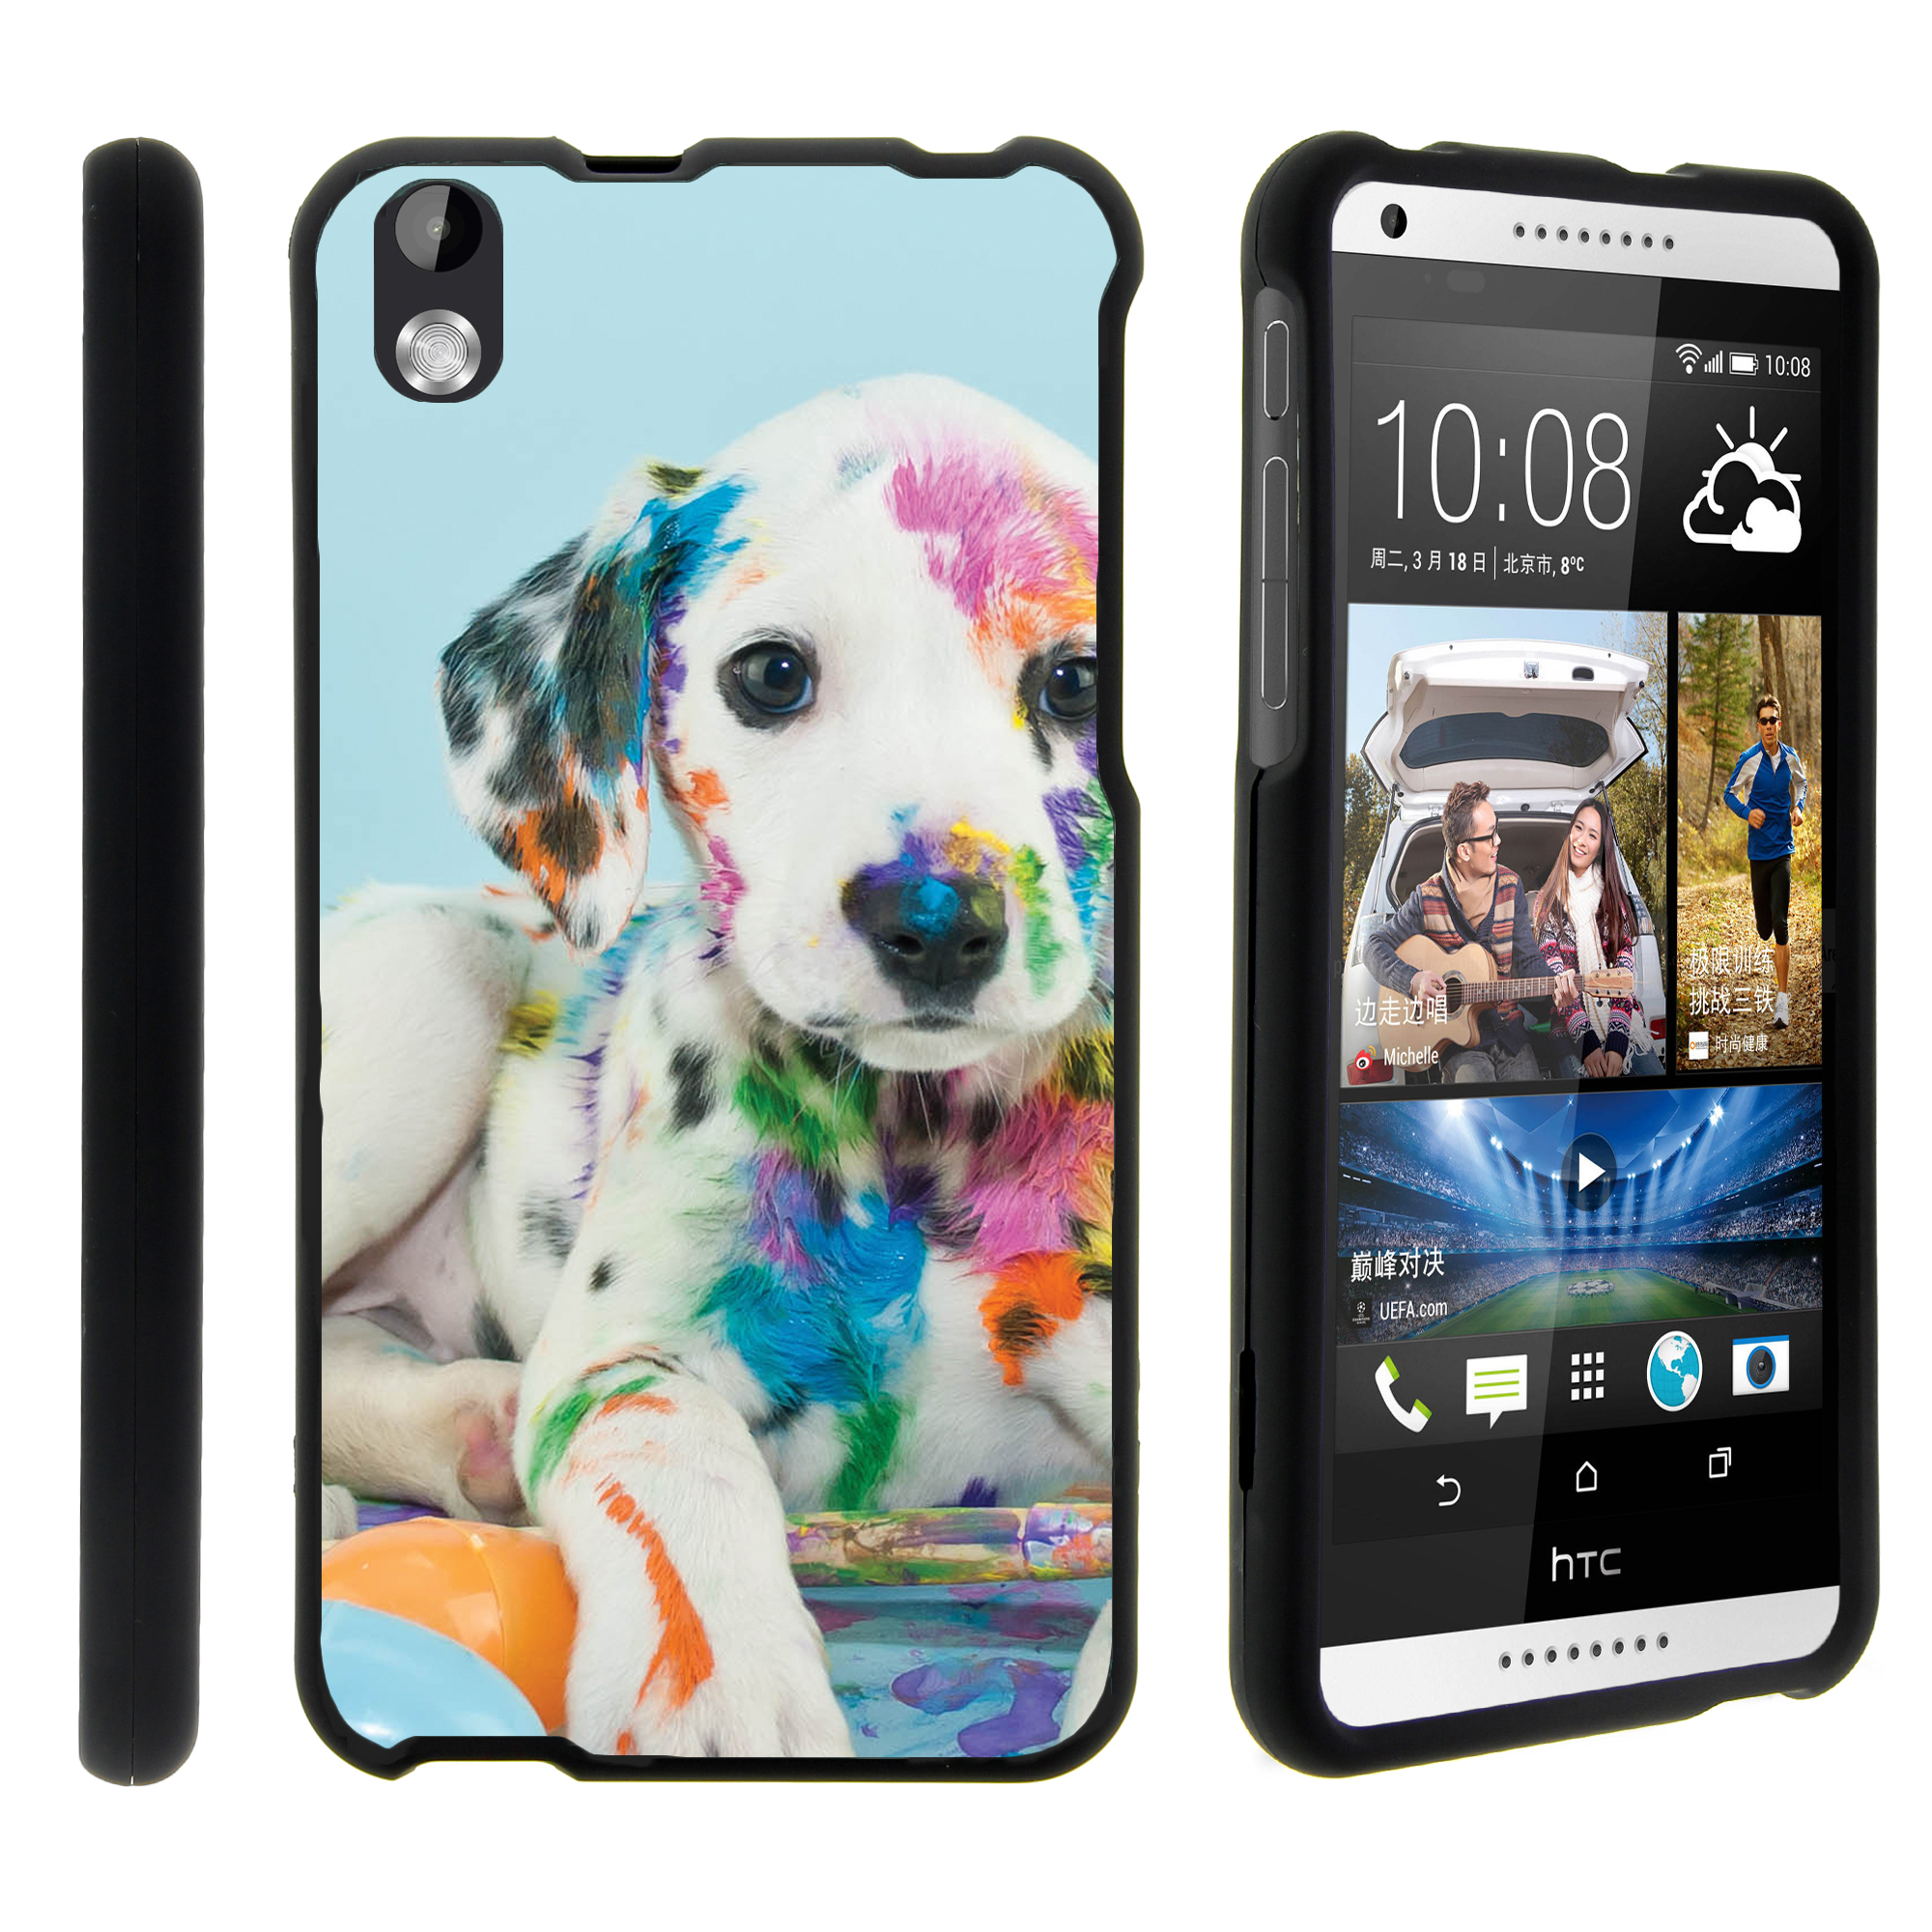 HTC Desire 816, [SNAP SHELL][Matte Black] 2 Piece Snap On Rubberized Hard Plastic Cell Phone Cover with Cool Designs - Colorful Puppy